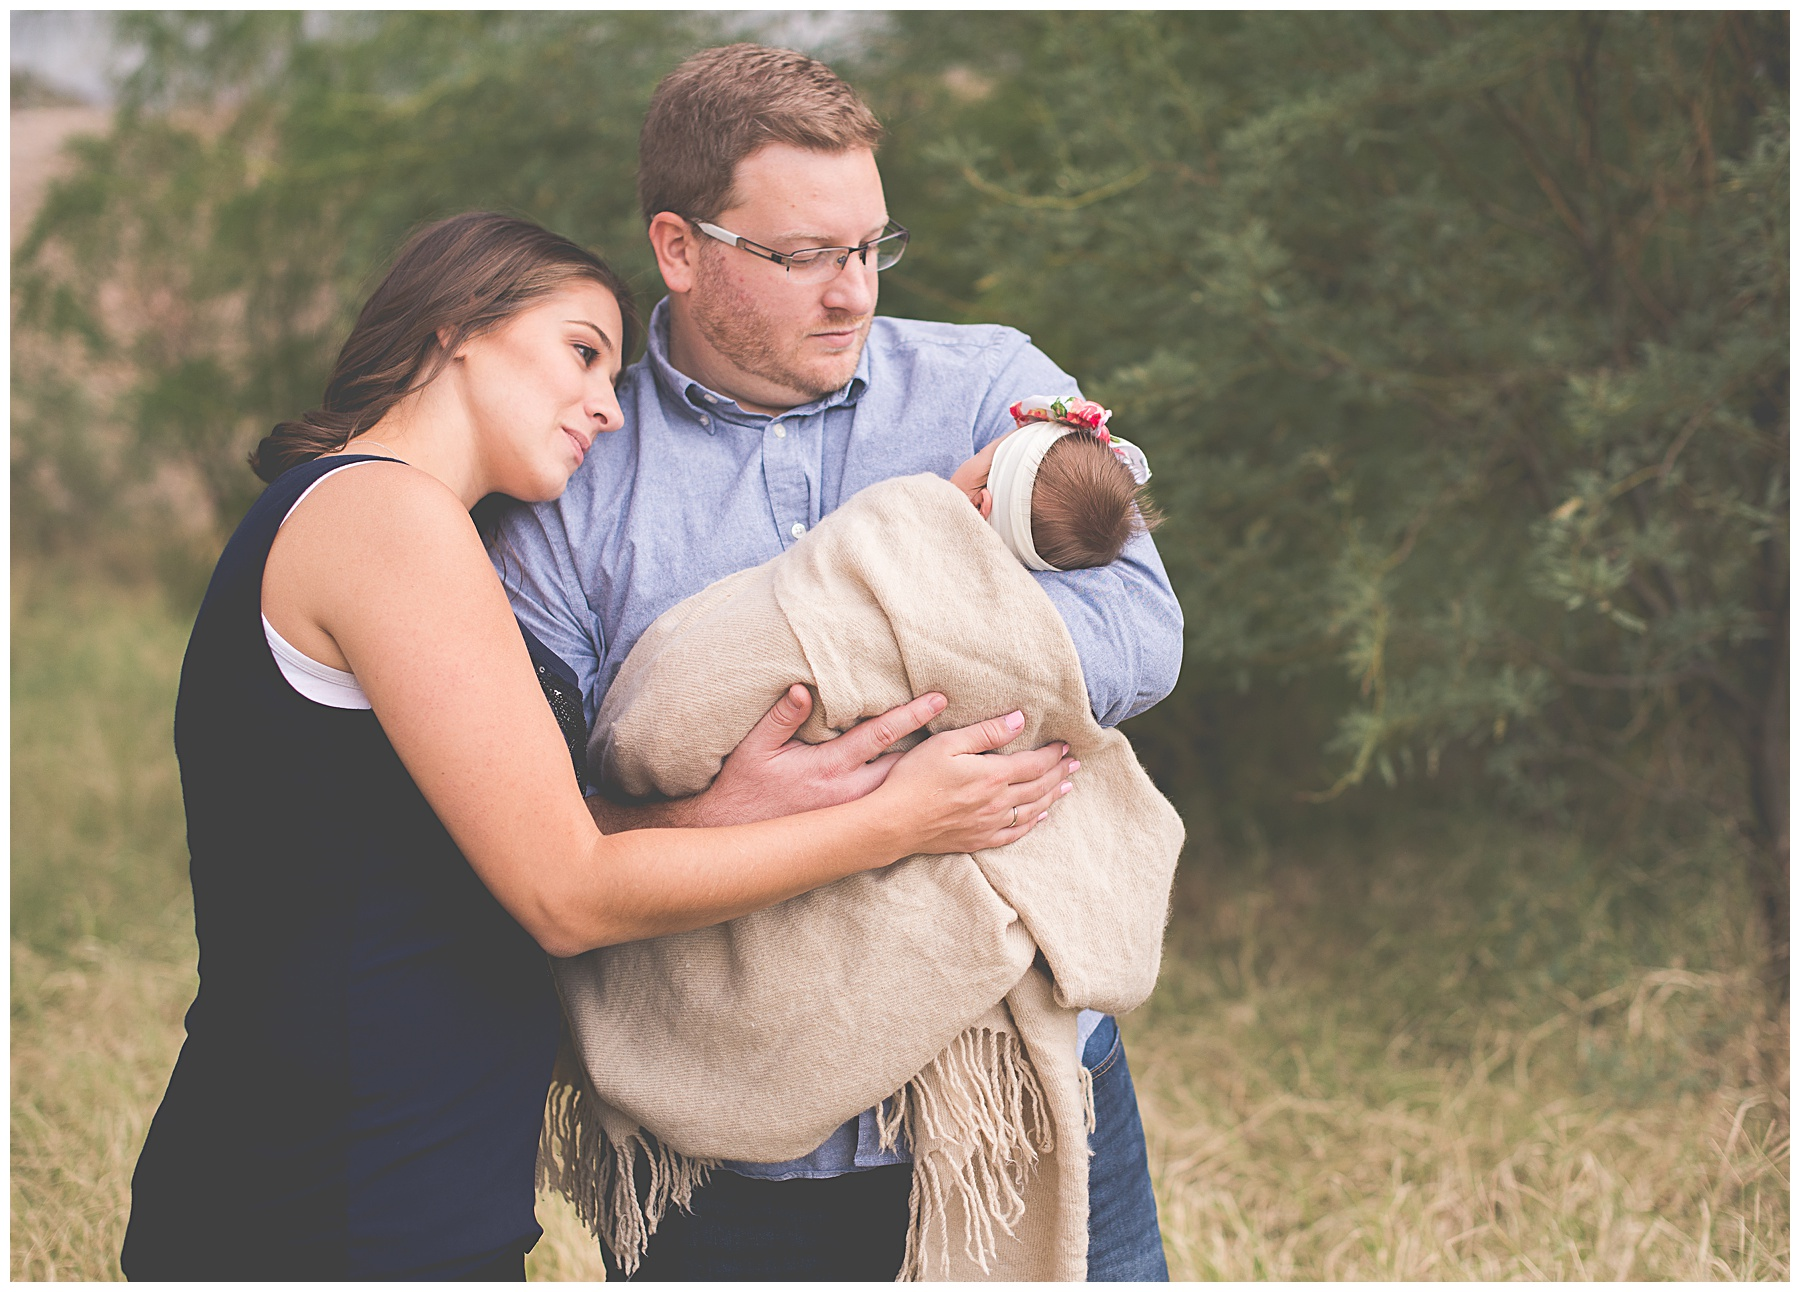 Phoenix-Outdoor-Lifestyle-Newborn-session-Sweetlife-Photography_0013.jpg